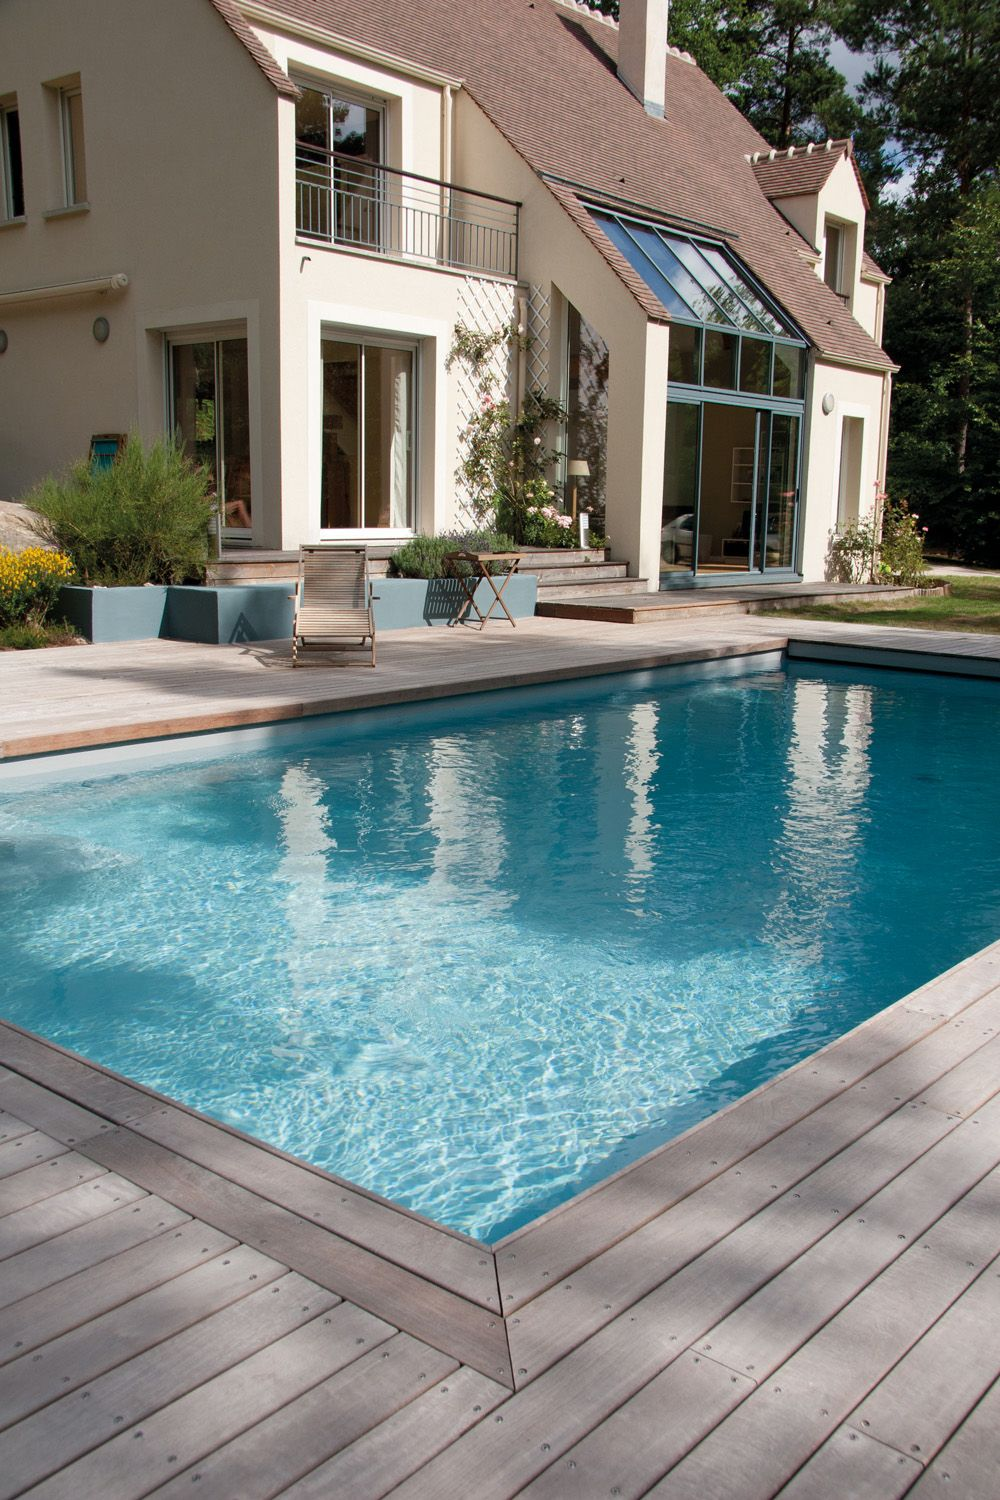 terrasse bois autour d 39 une piscine terrasse pinterest swimming pools backyard and pool. Black Bedroom Furniture Sets. Home Design Ideas